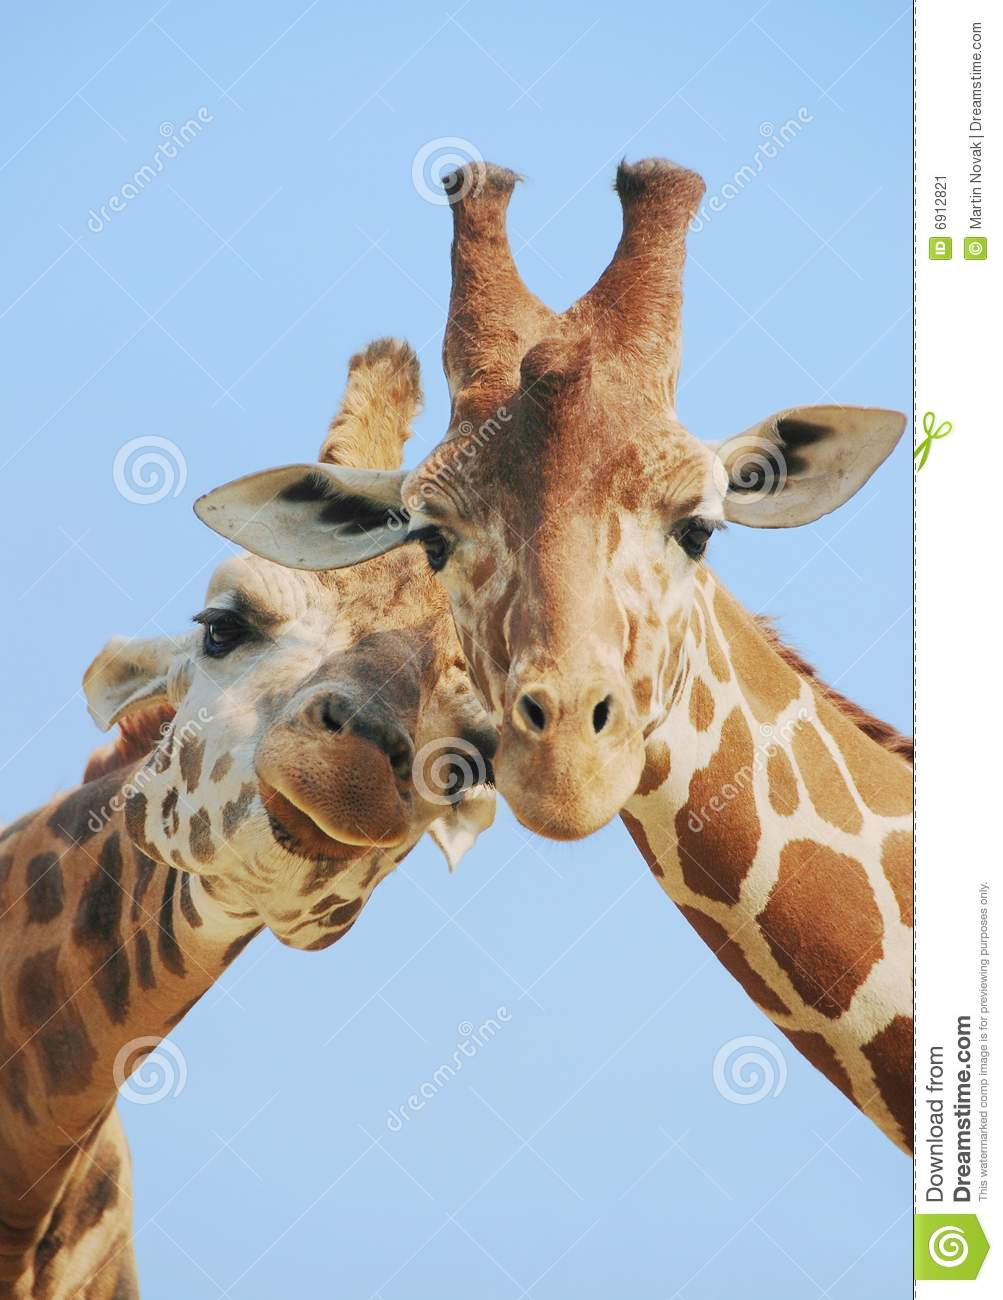 Cute Baby Animals Wallpapers Free Download Animal Love Giraffes Stock Image Image Of African Brown